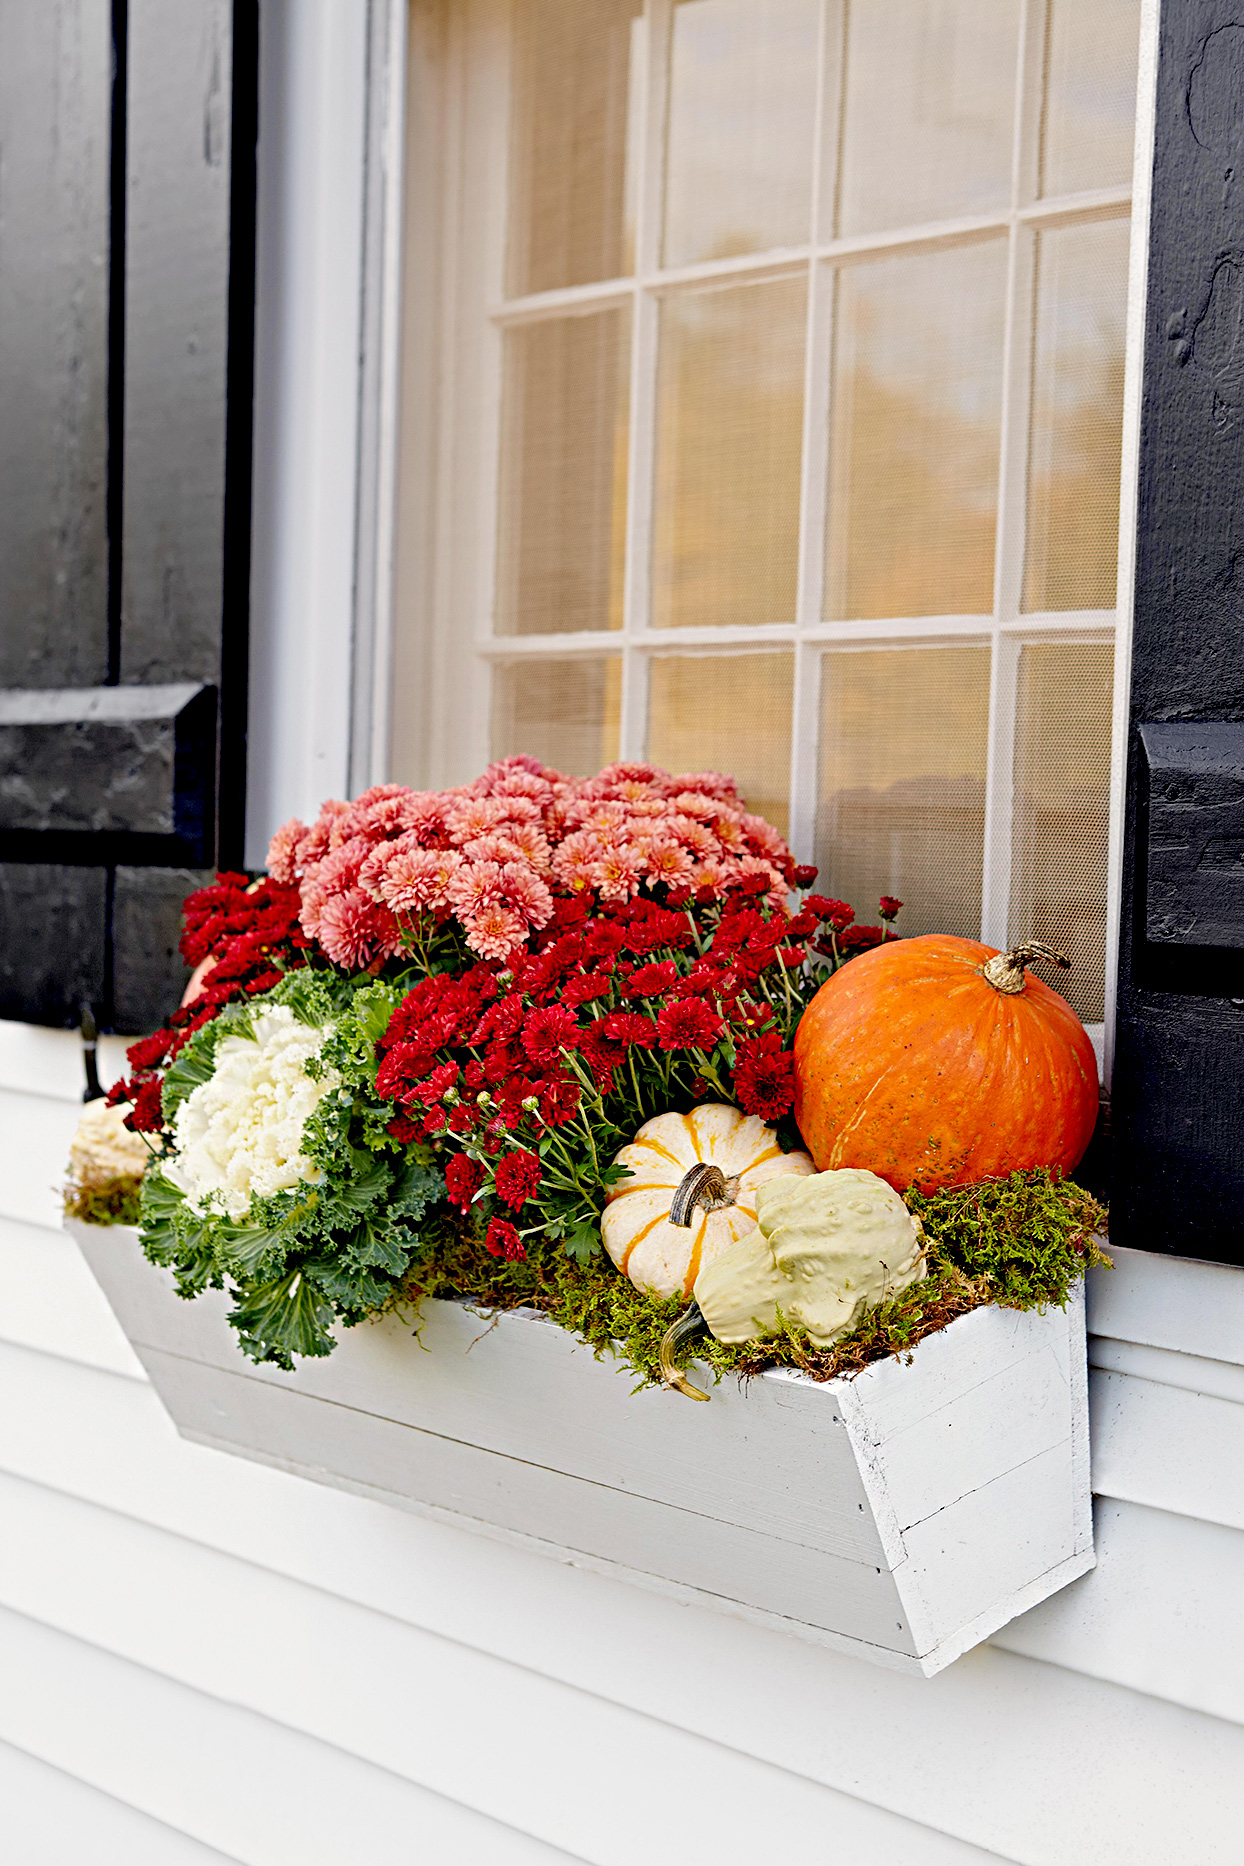 Pumpkins and plants in a window box